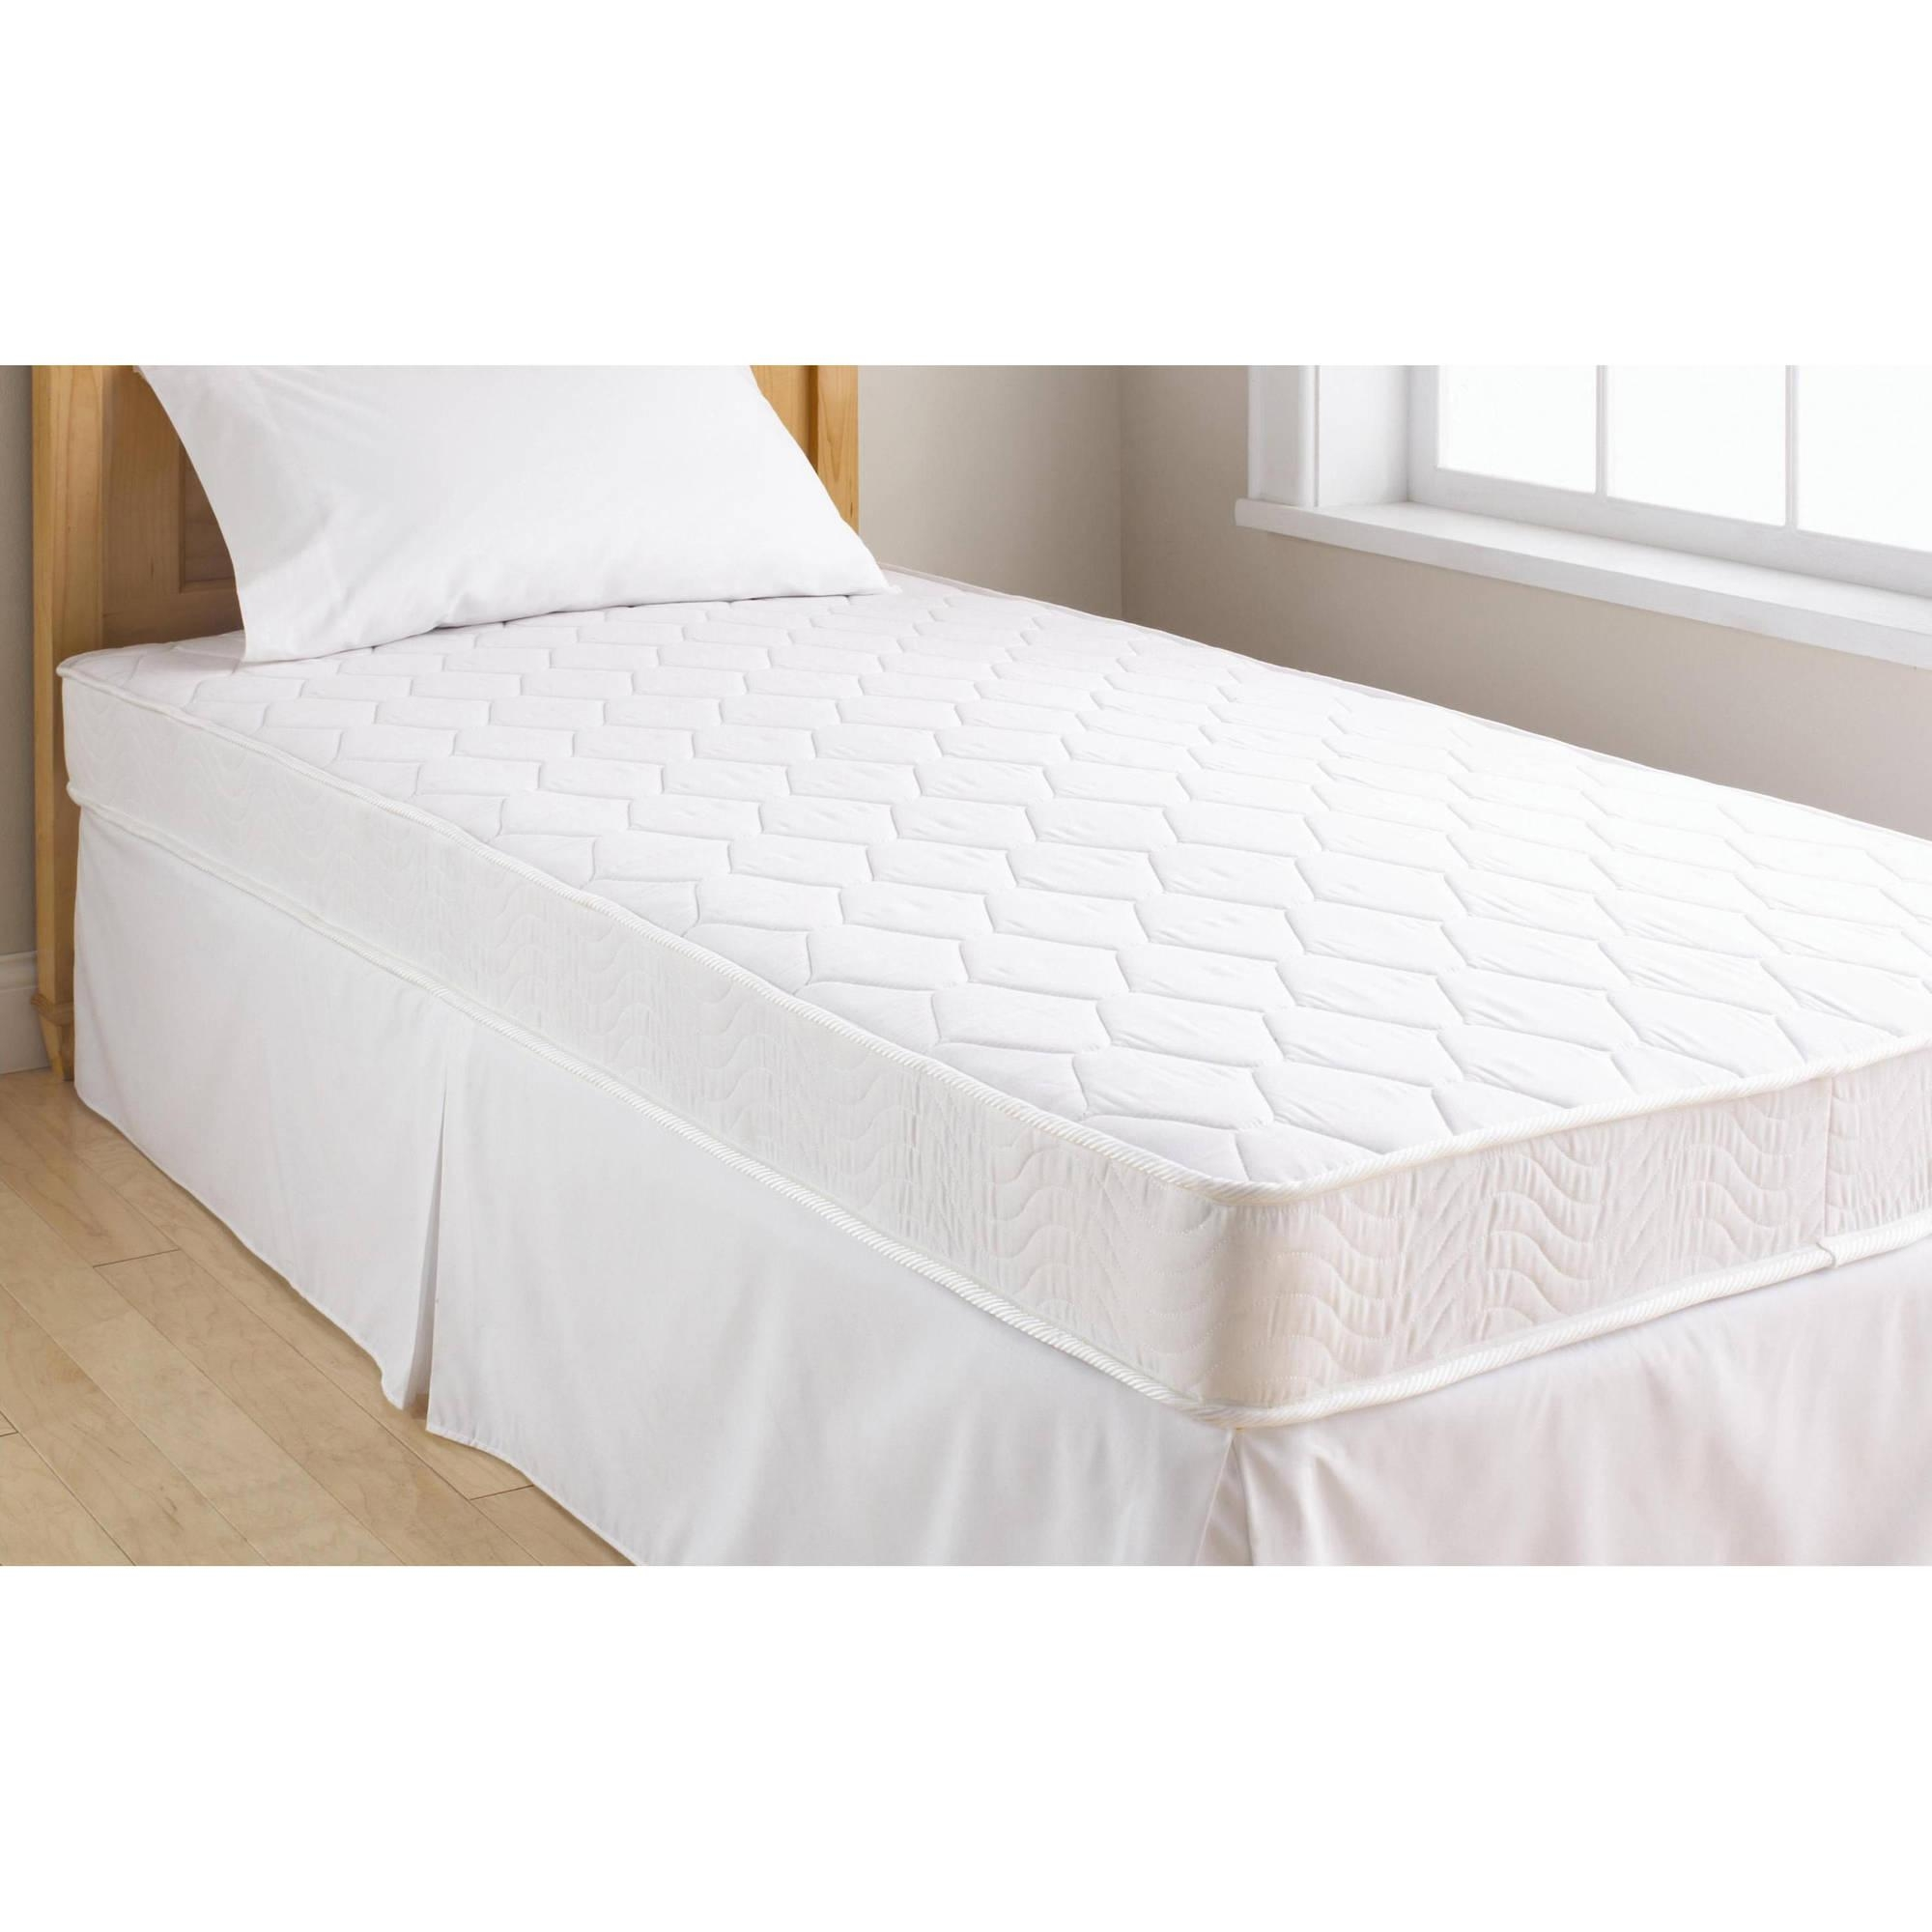 Mattresses : King Size Air Mattress Costco Air Mattress Bunnings With Regard To Inflatable Full Size Mattress (View 19 of 20)